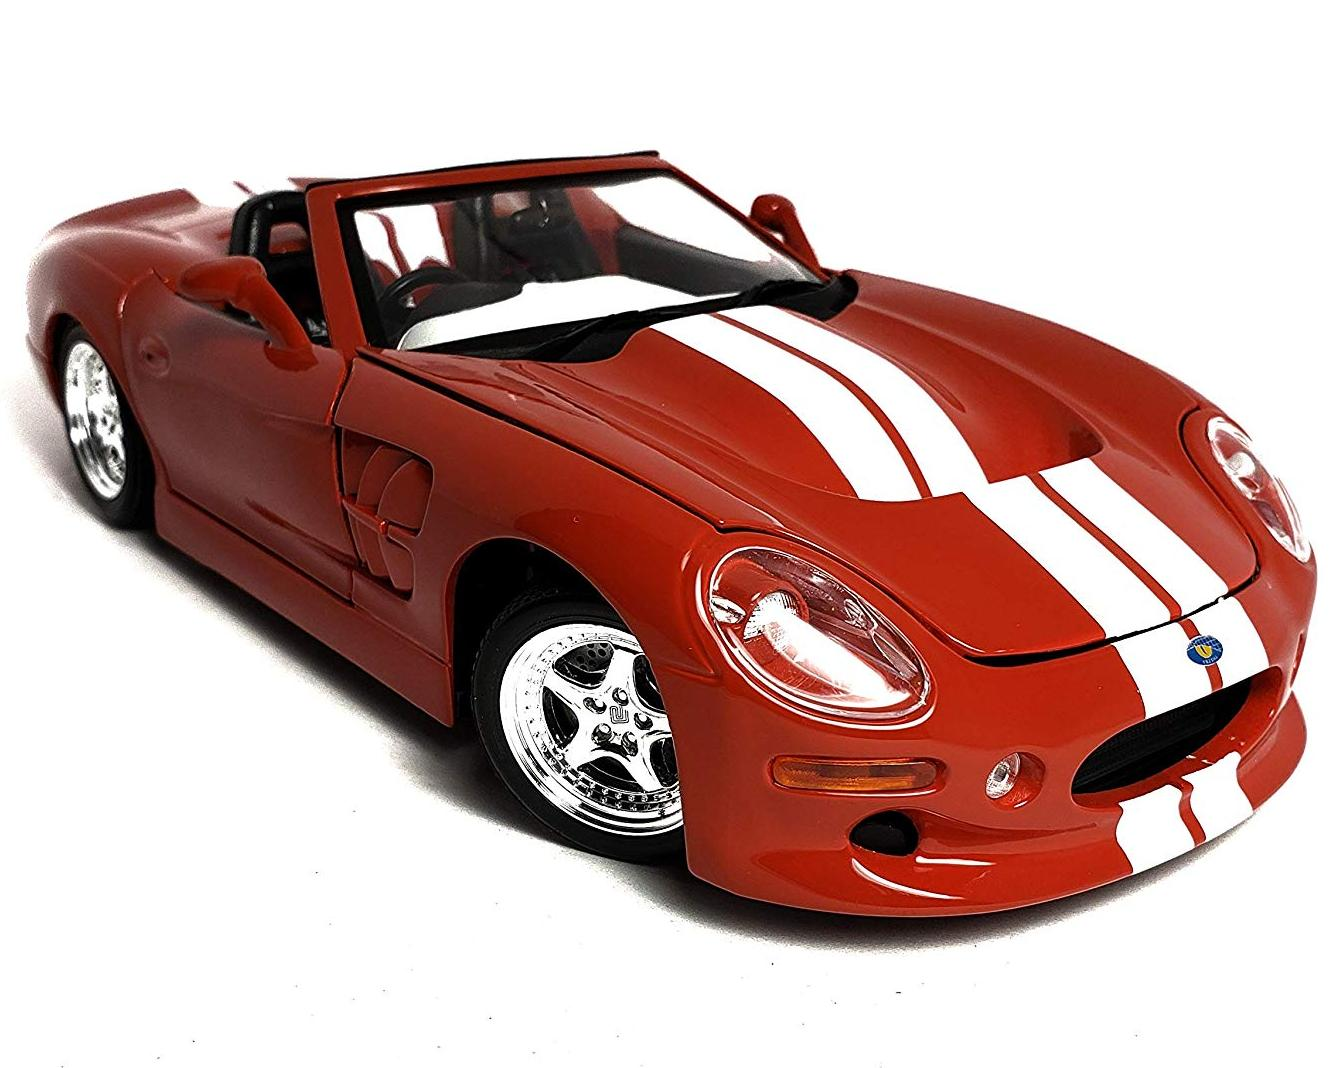 Машинка Maisto 1:18 Shelby Series One 1999 года, красная